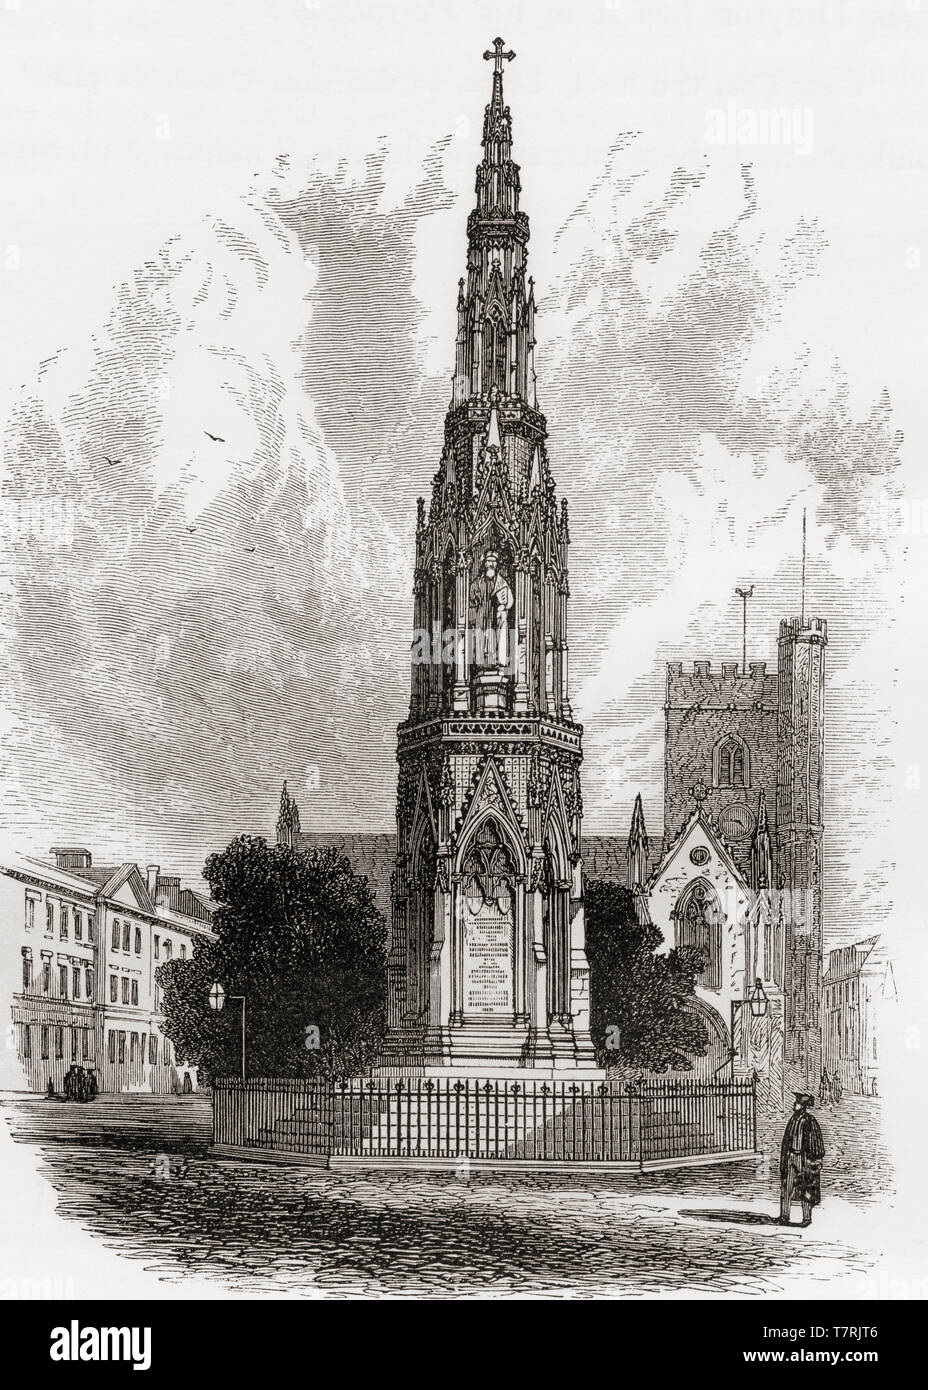 The Martyr's Memorial, Oxford, England, seen here in the 19th century. This stone monument commemorates the 16th century Oxford Martyrs.  From English Pictures, published 1890. - Stock Image